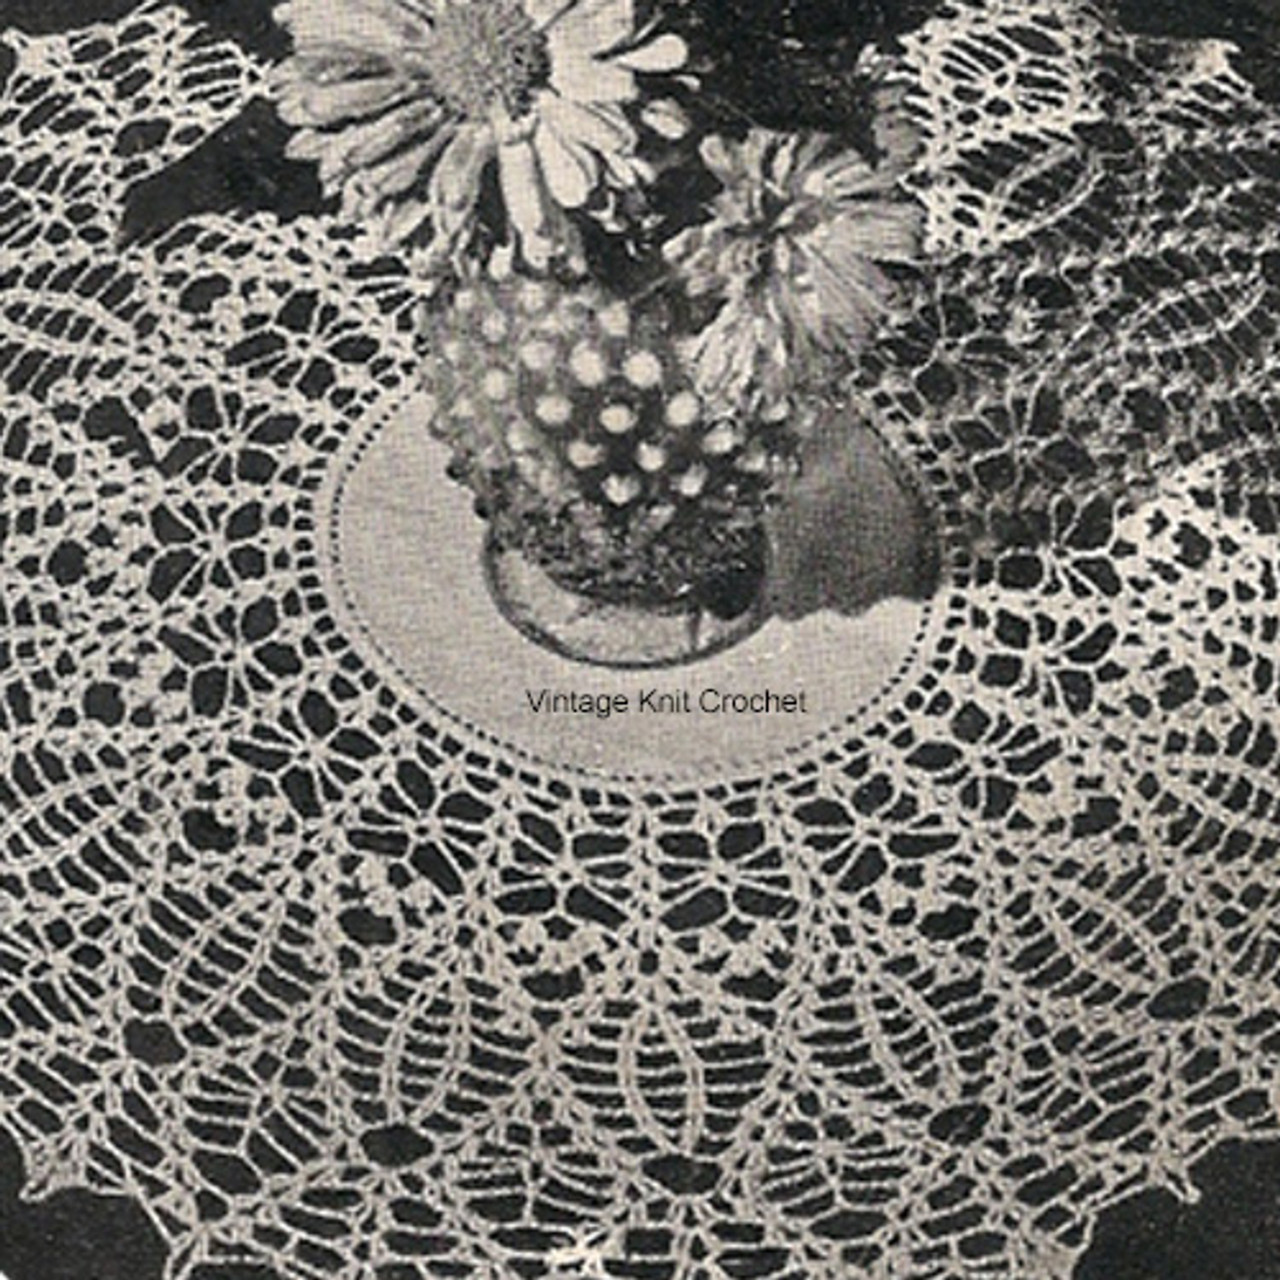 Crocheted Pineapple Doily Pattern with linen center, 10 inches